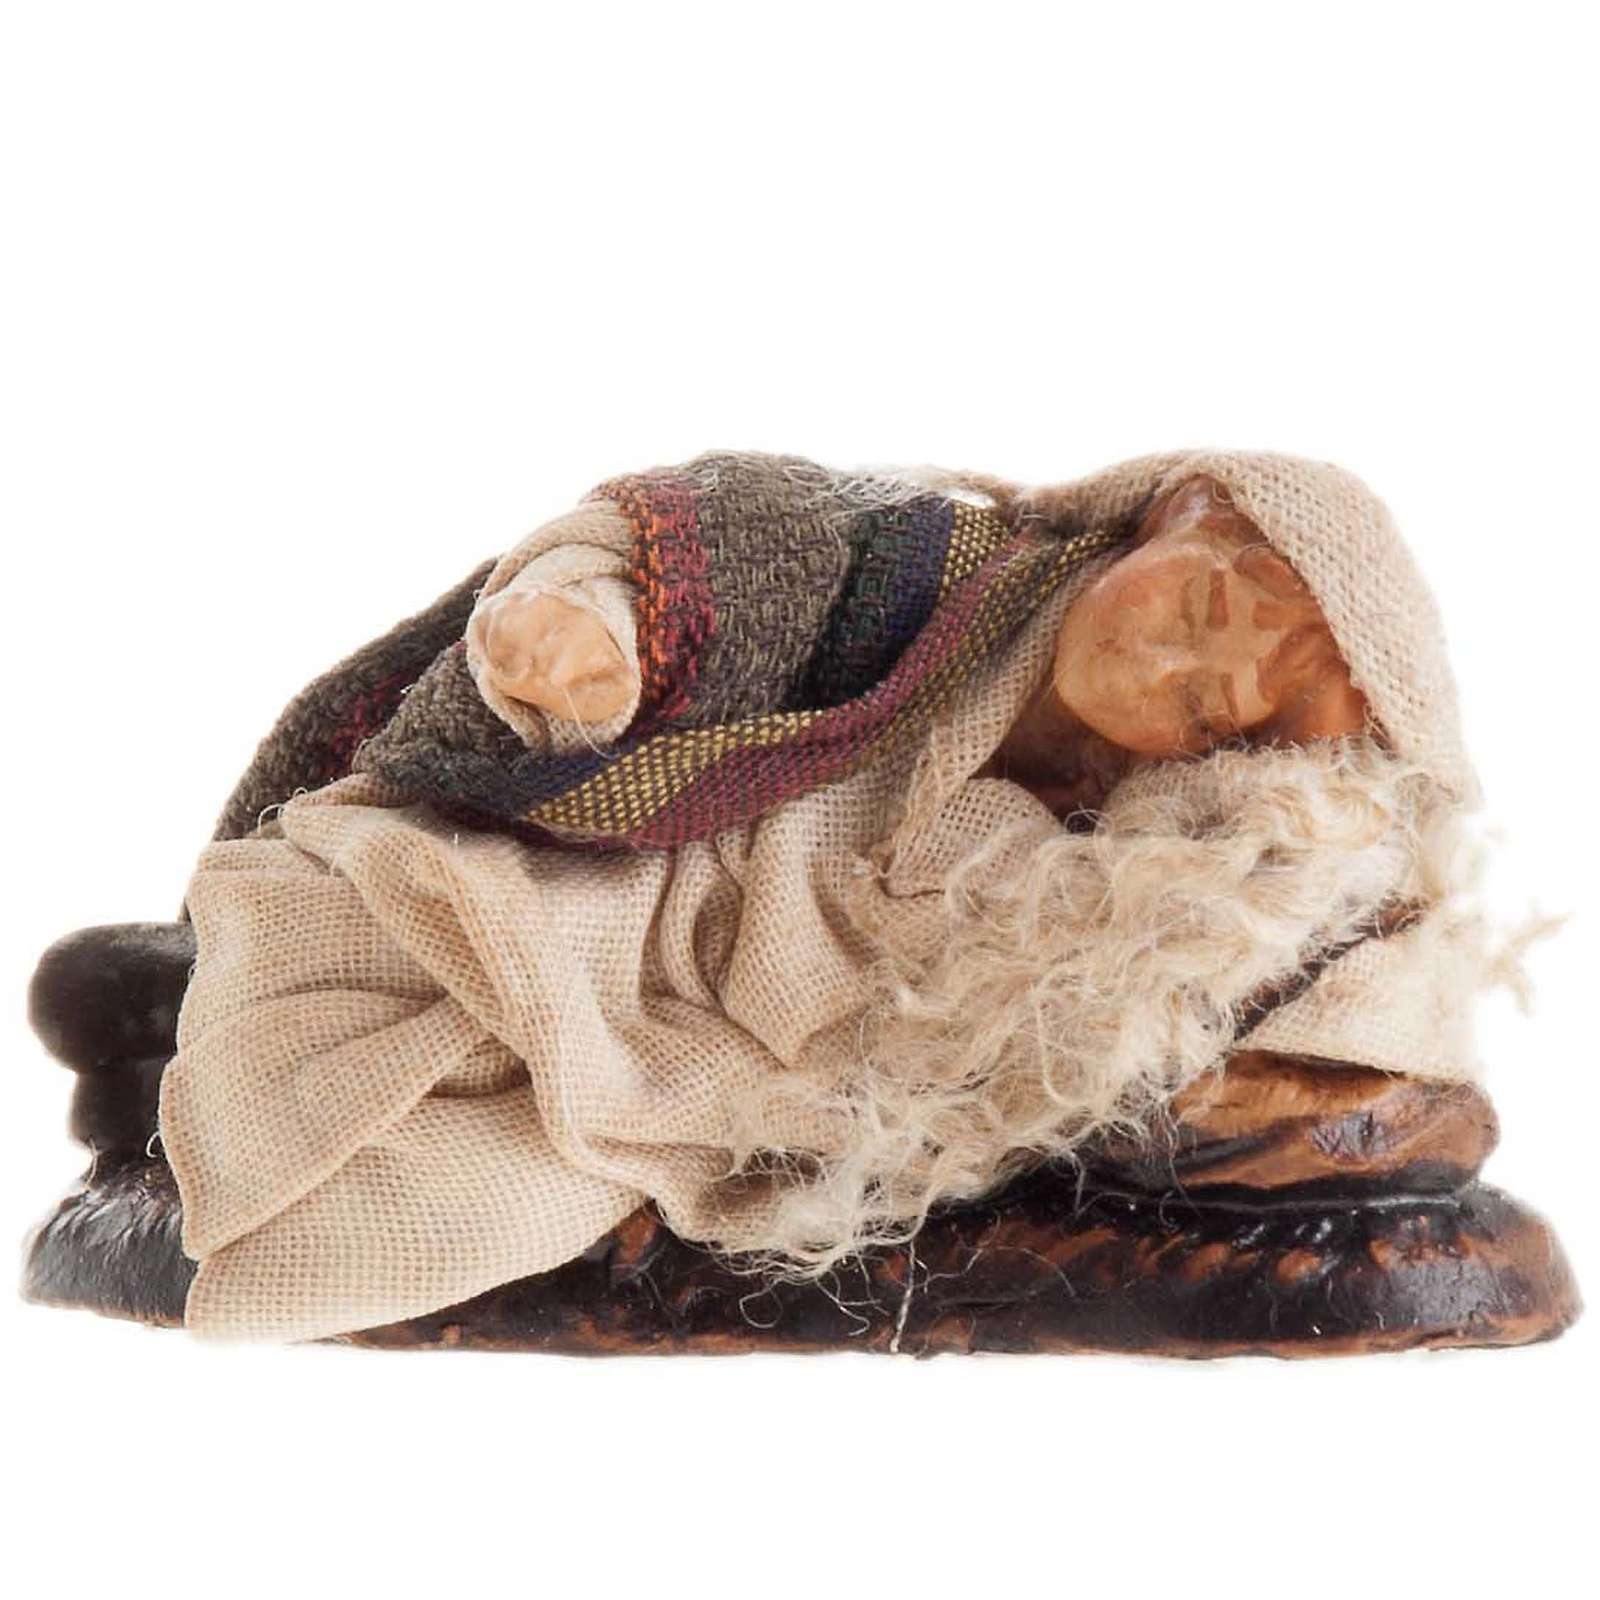 Neapolitan Nativity figurine, Sleeping man 8cm 4